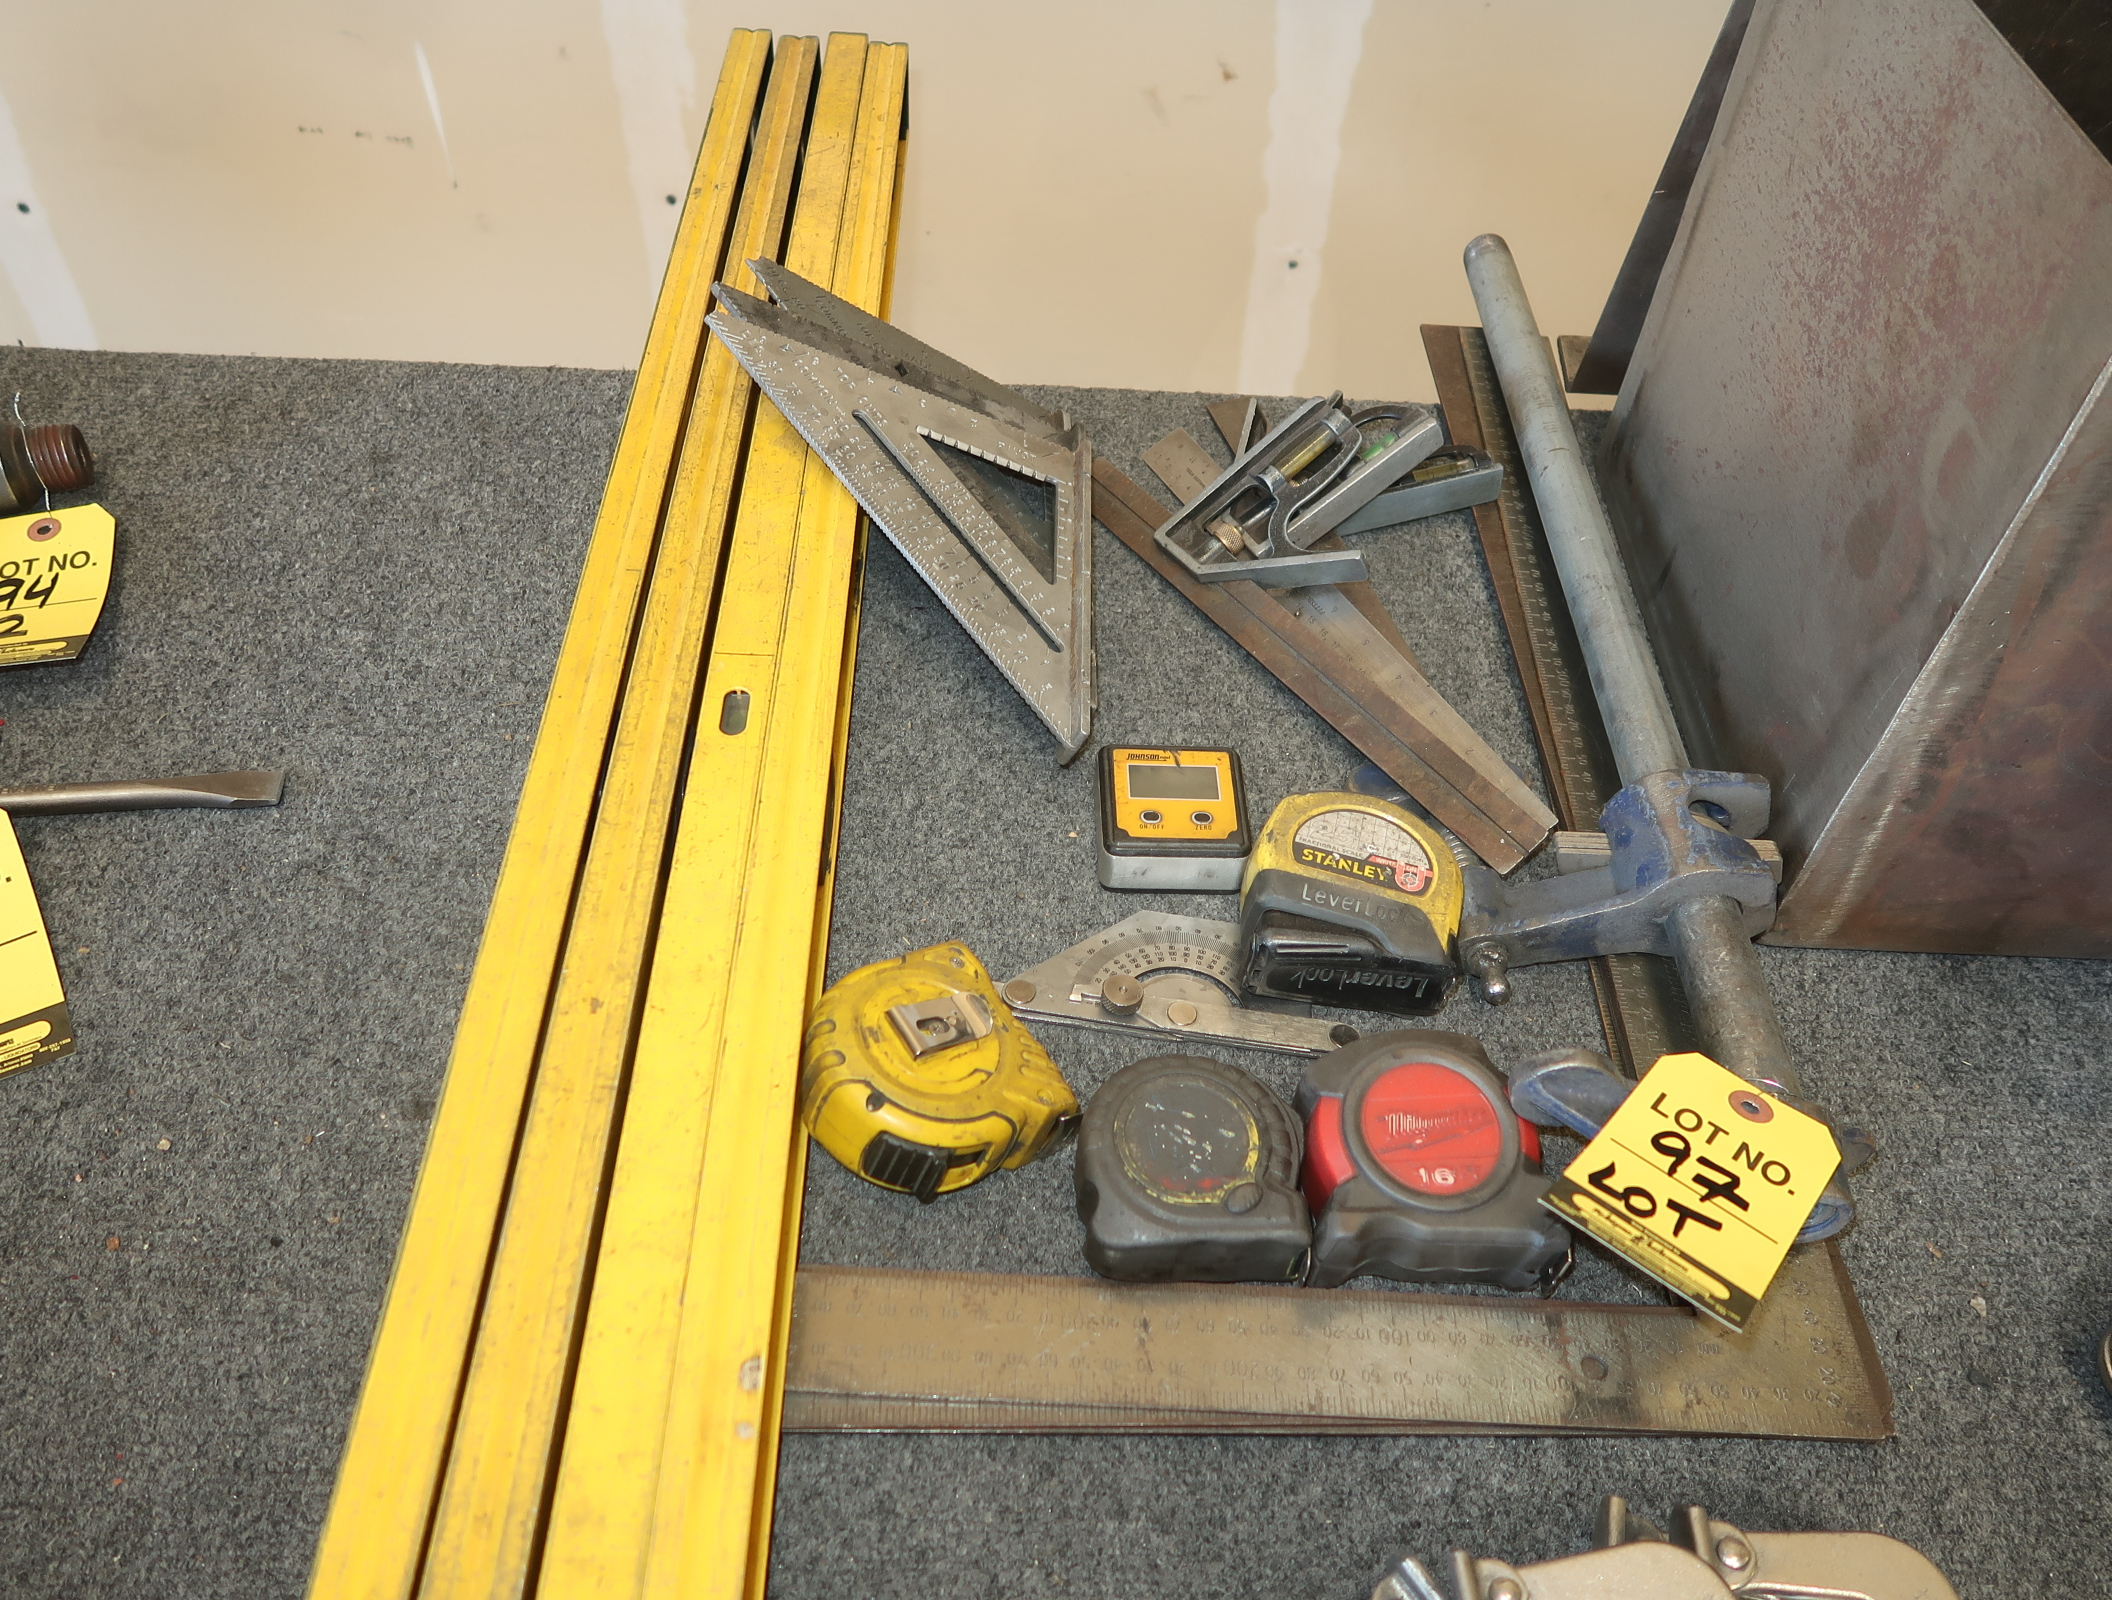 Lot 97 - 4' LEVELS, TAPE MEASURES, SPEED SQUARES, ETC.